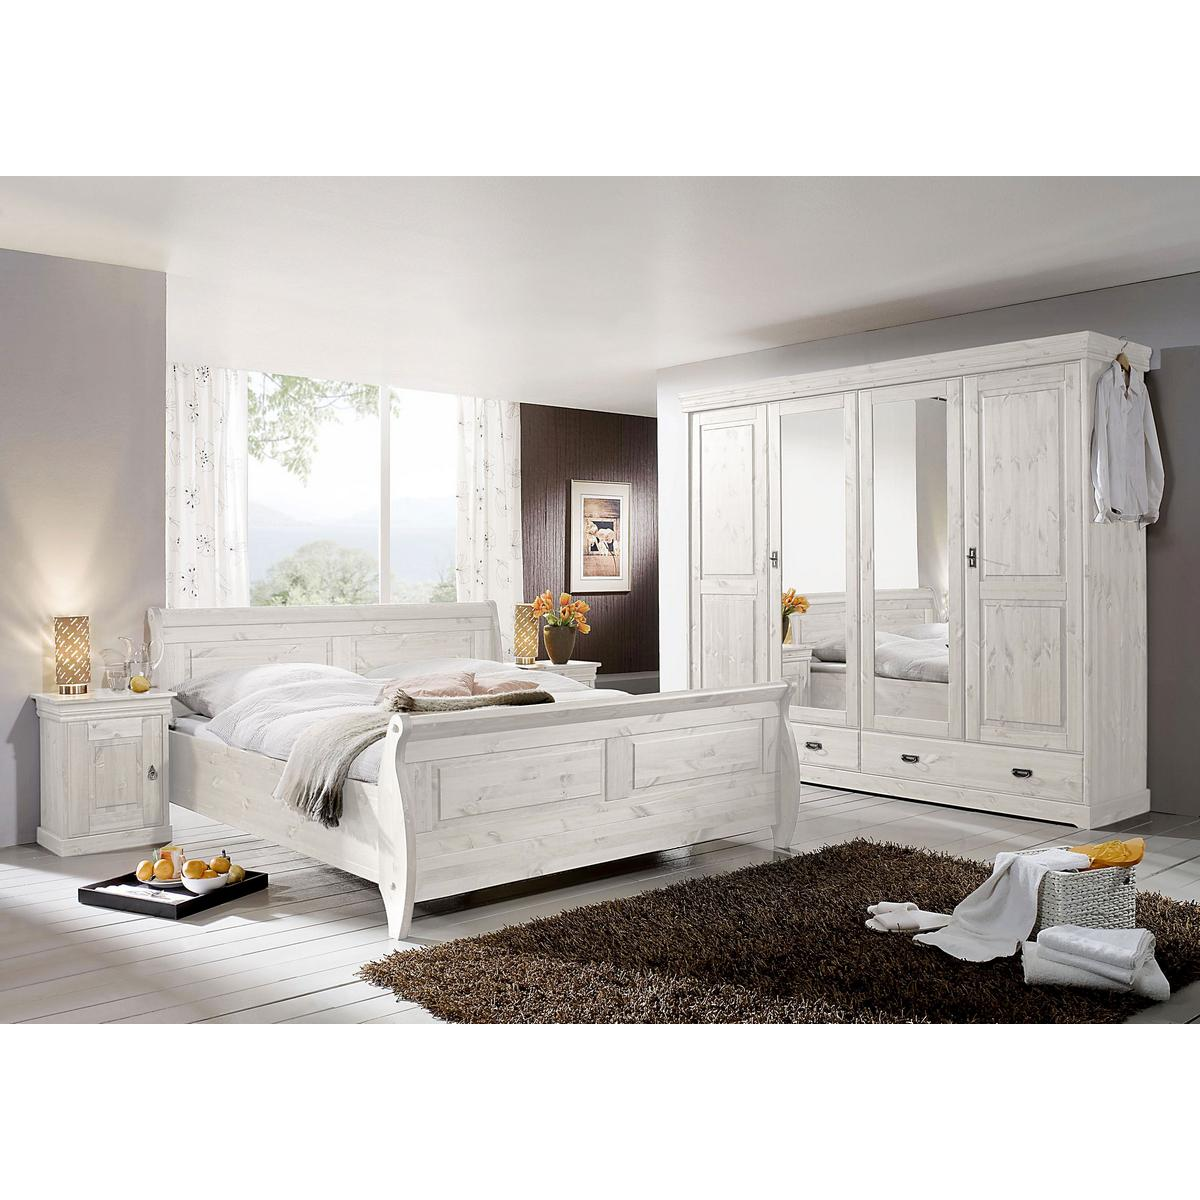 schlafzimmer komplett echtholz. Black Bedroom Furniture Sets. Home Design Ideas